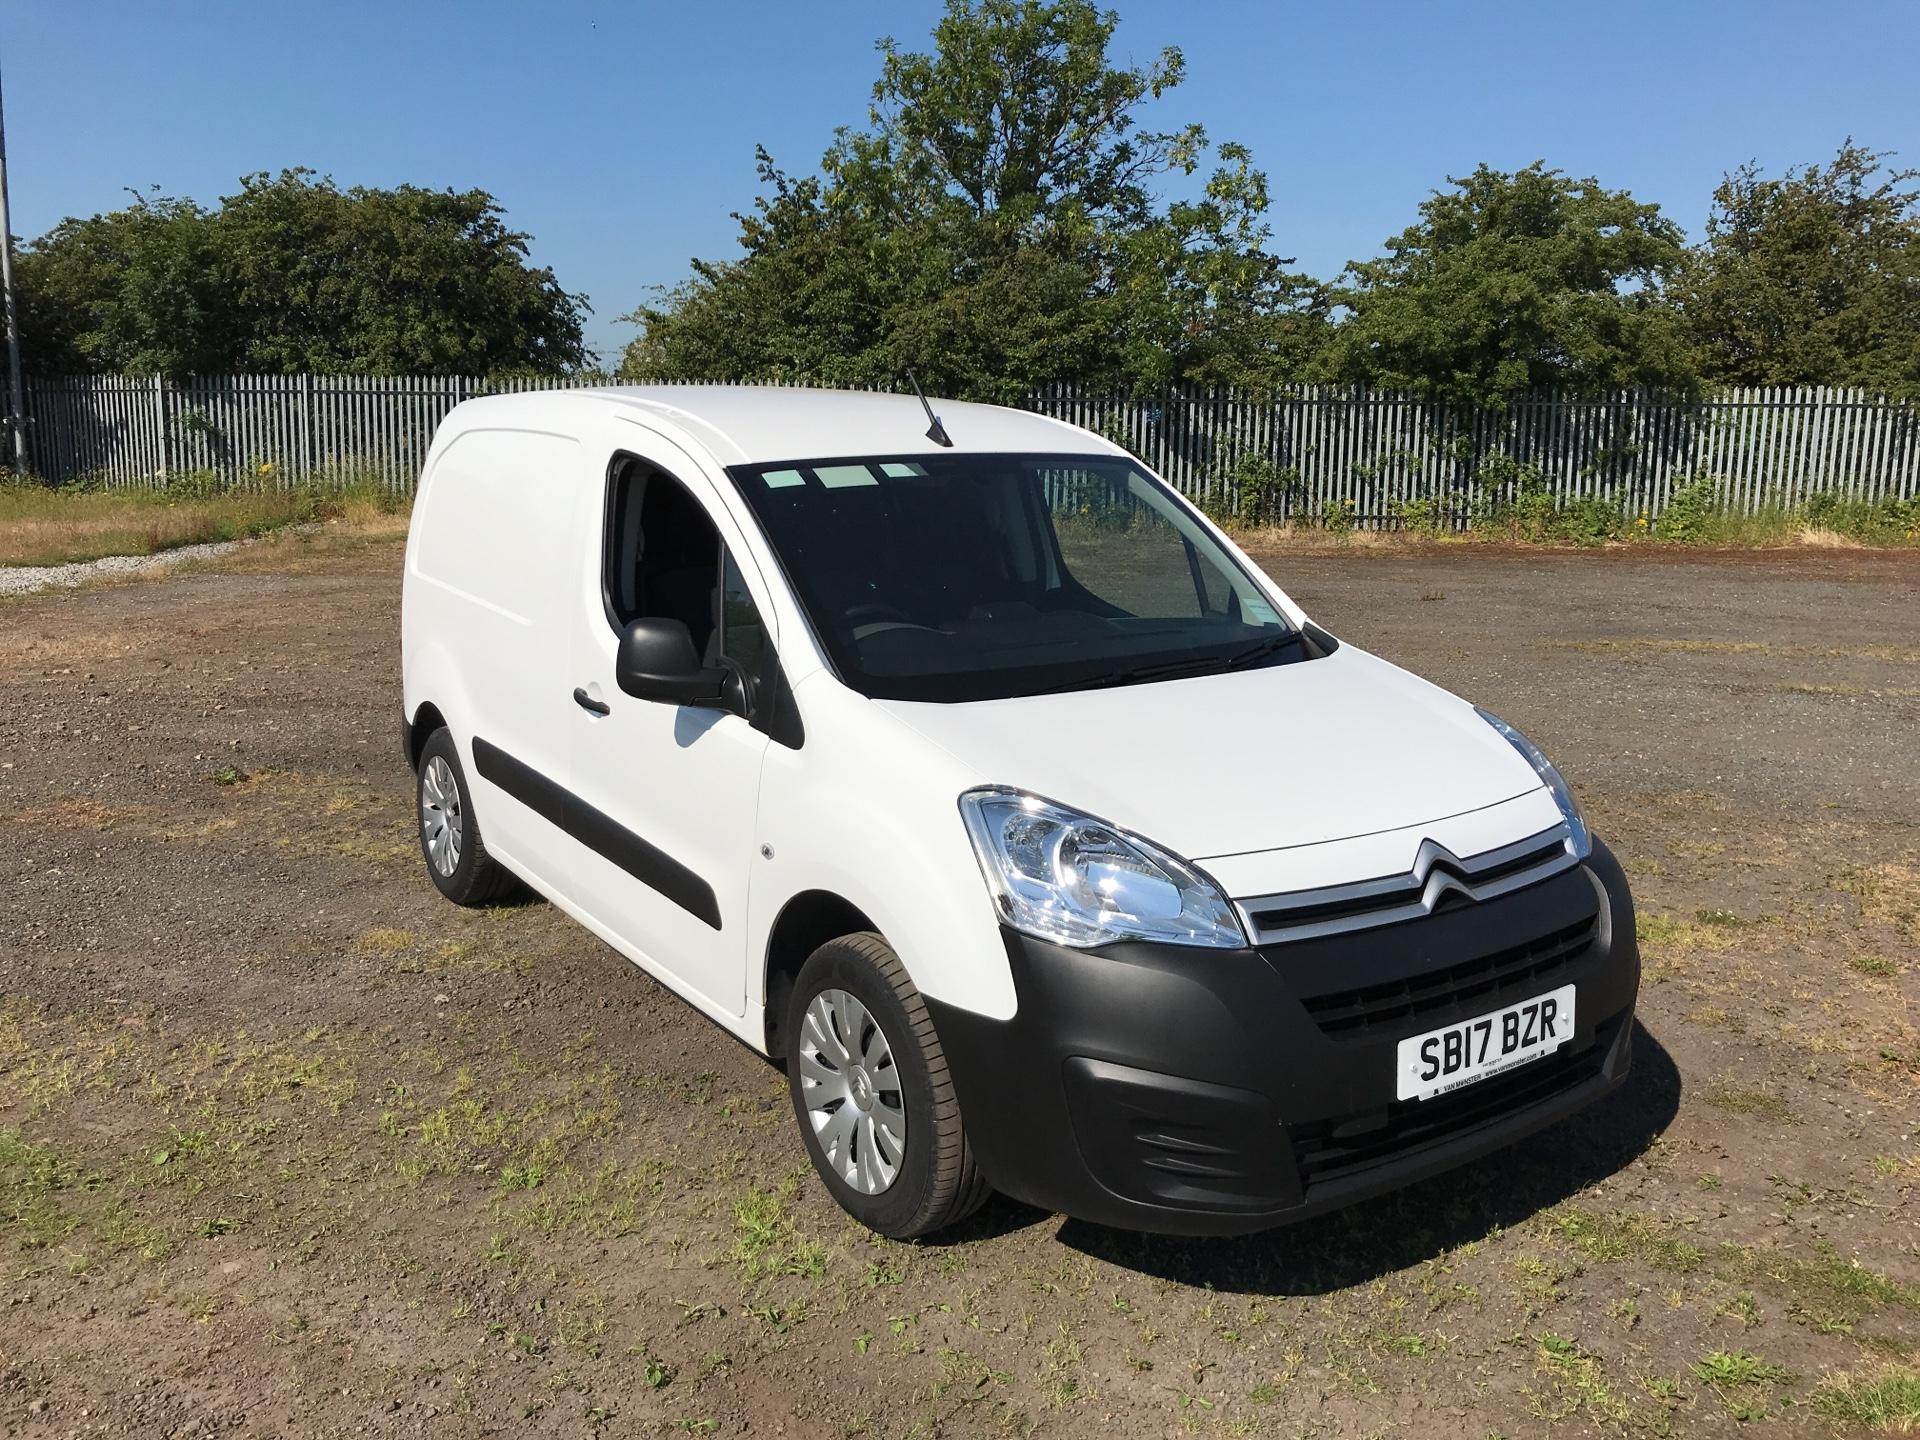 2017 Citroen Berlingo  L1 DIESEL 1.6 BlueHDI 625KG ENTERPRISE 75PS EURO 6 (SB17BZR)